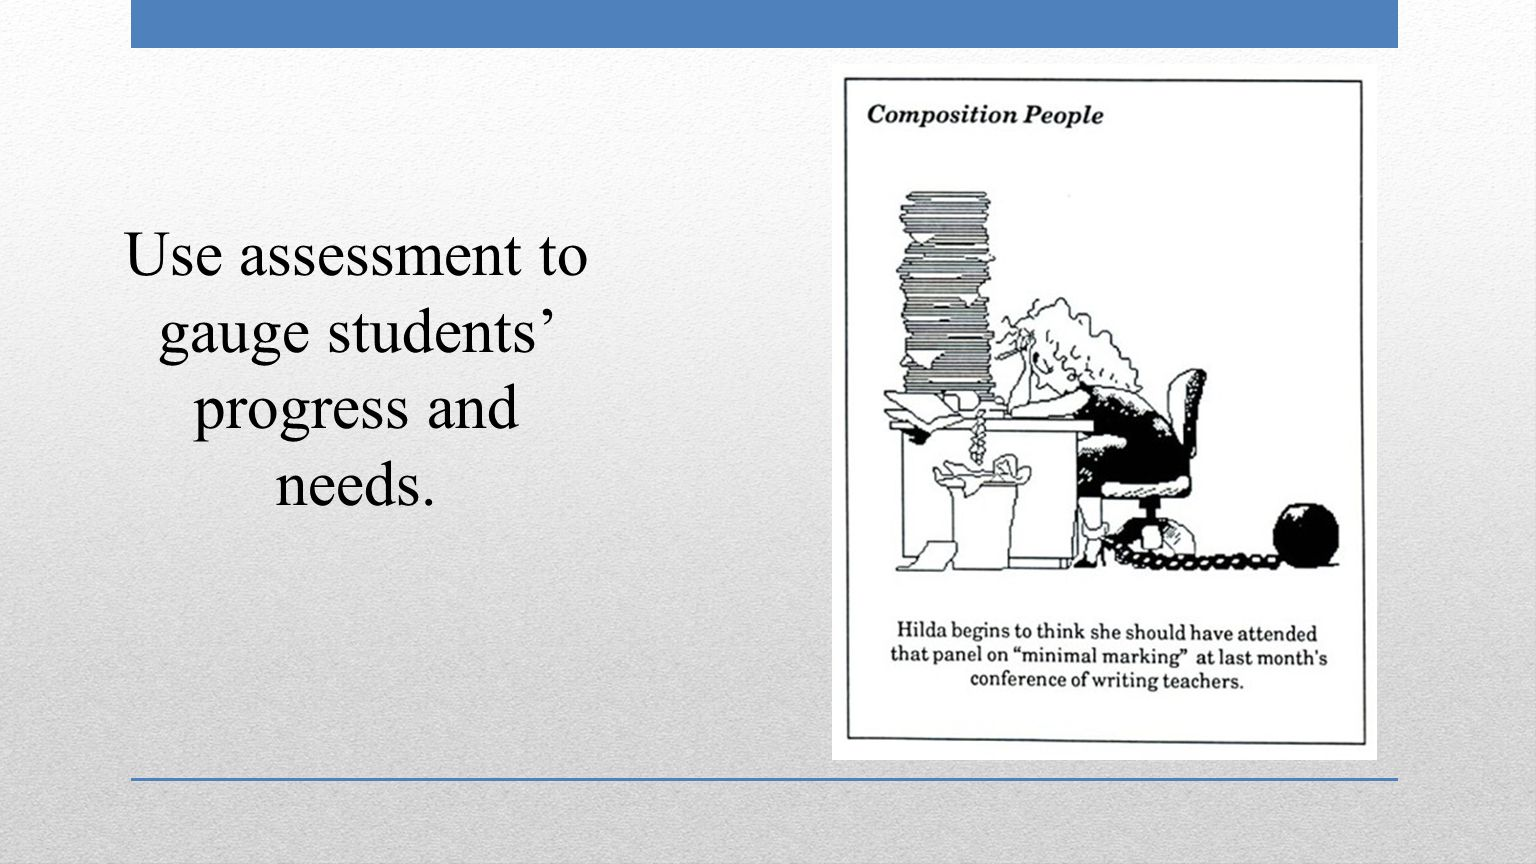 Use assessment to gauge students' progress and needs.